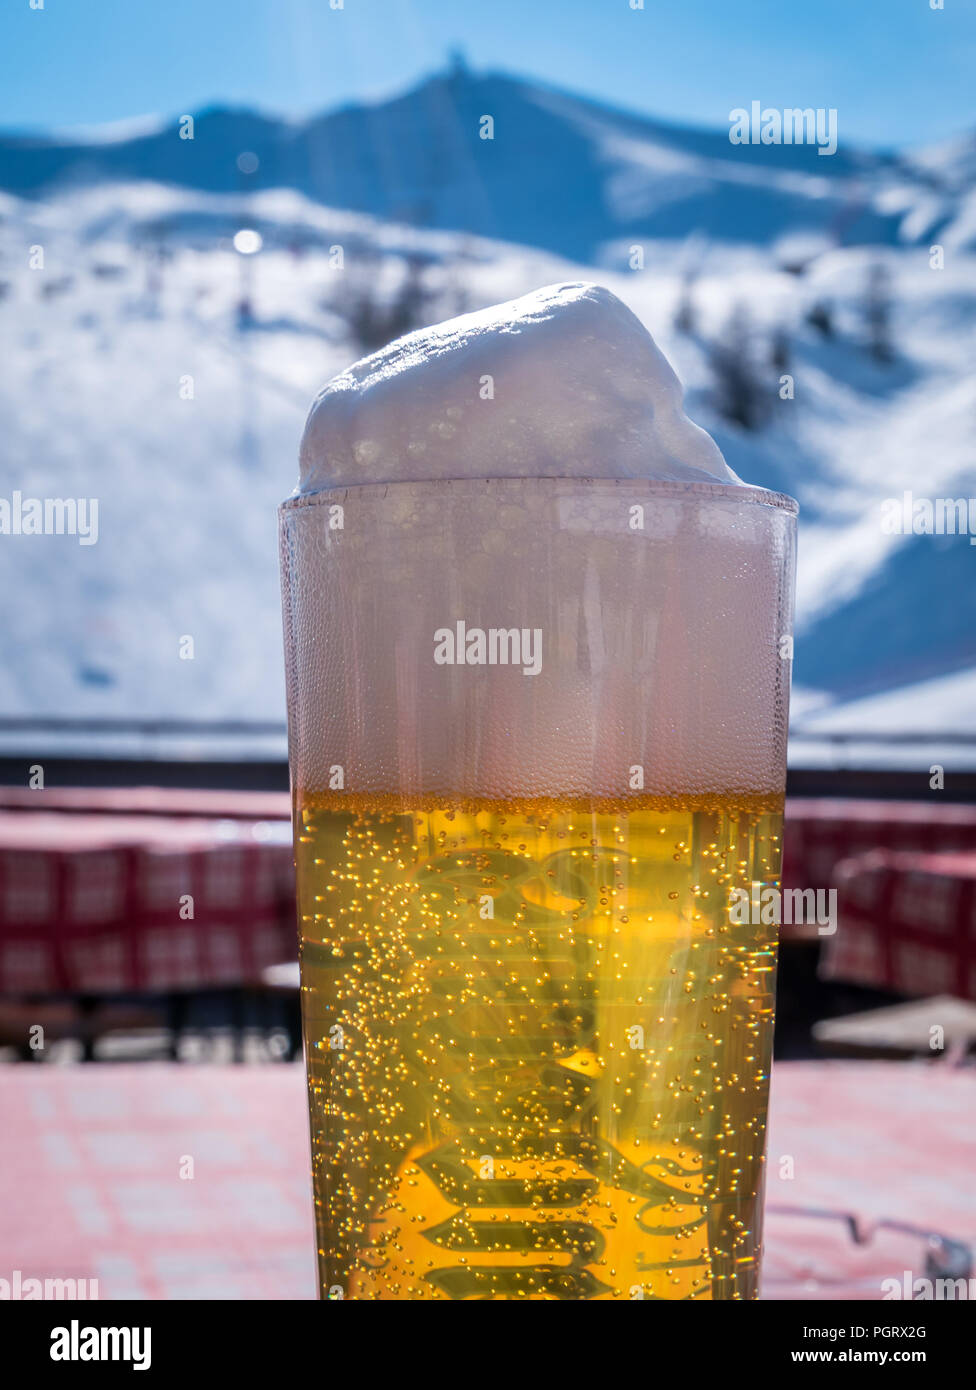 Close-up of beer foam. Draft beer in glass with winter landscape in background. Ski slope in sunny weather. - Stock Image